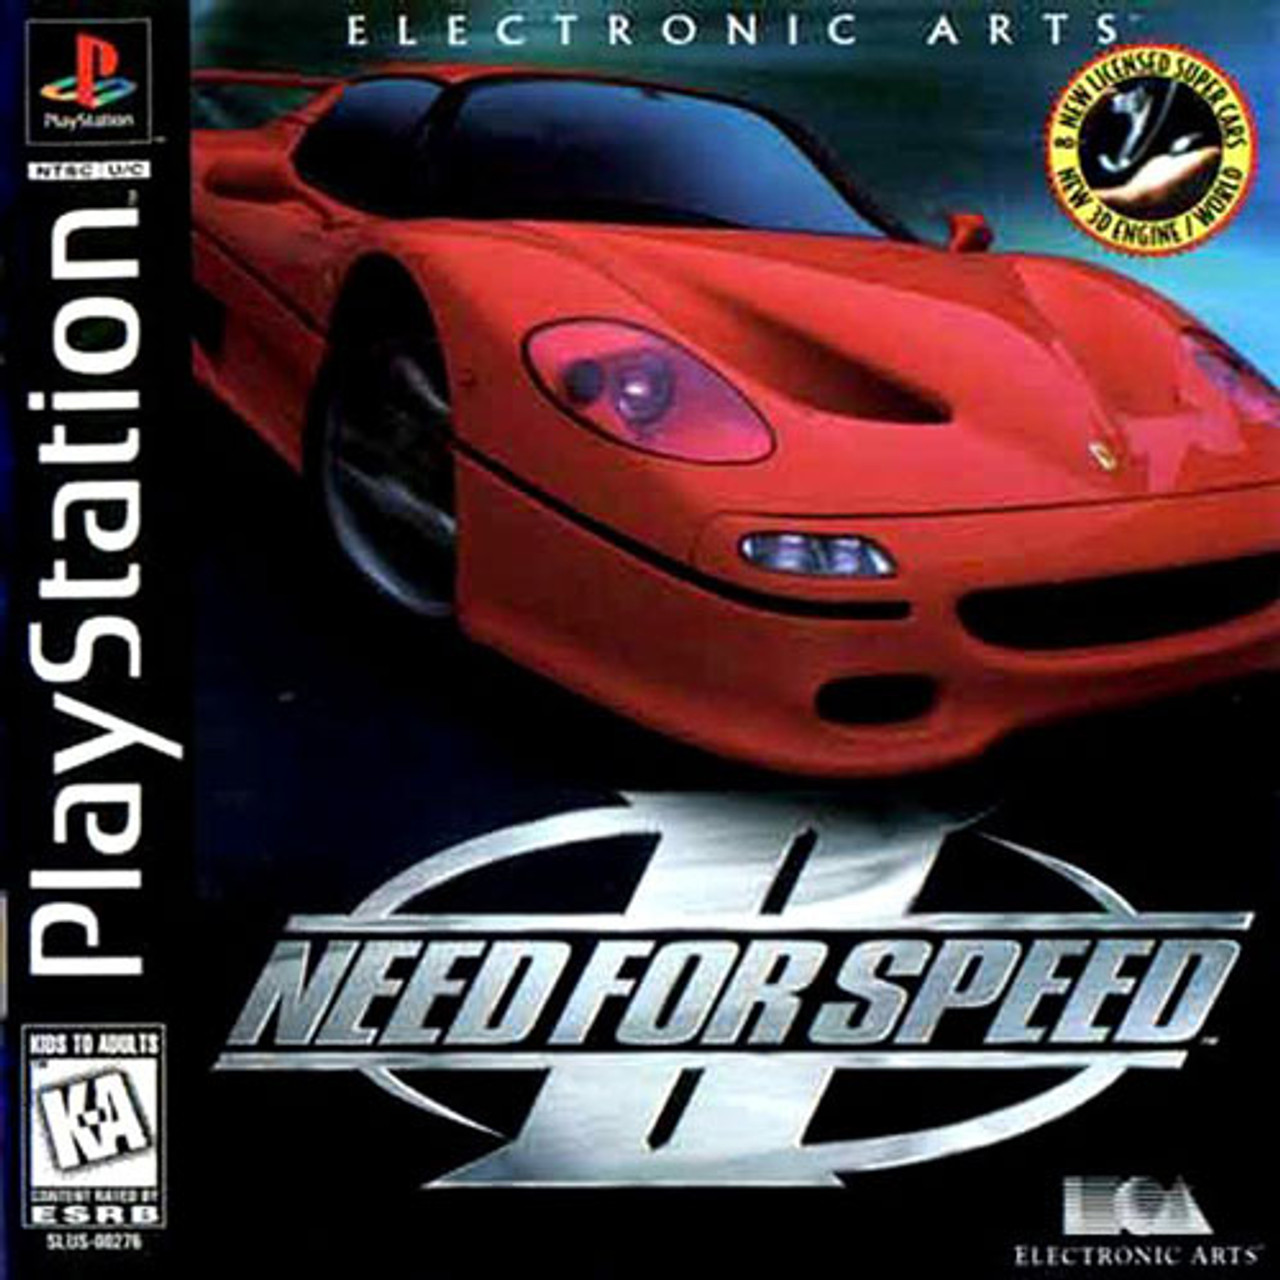 Complete Need For Speed Ii 2 Ps1 Game For Sale Dkoldies